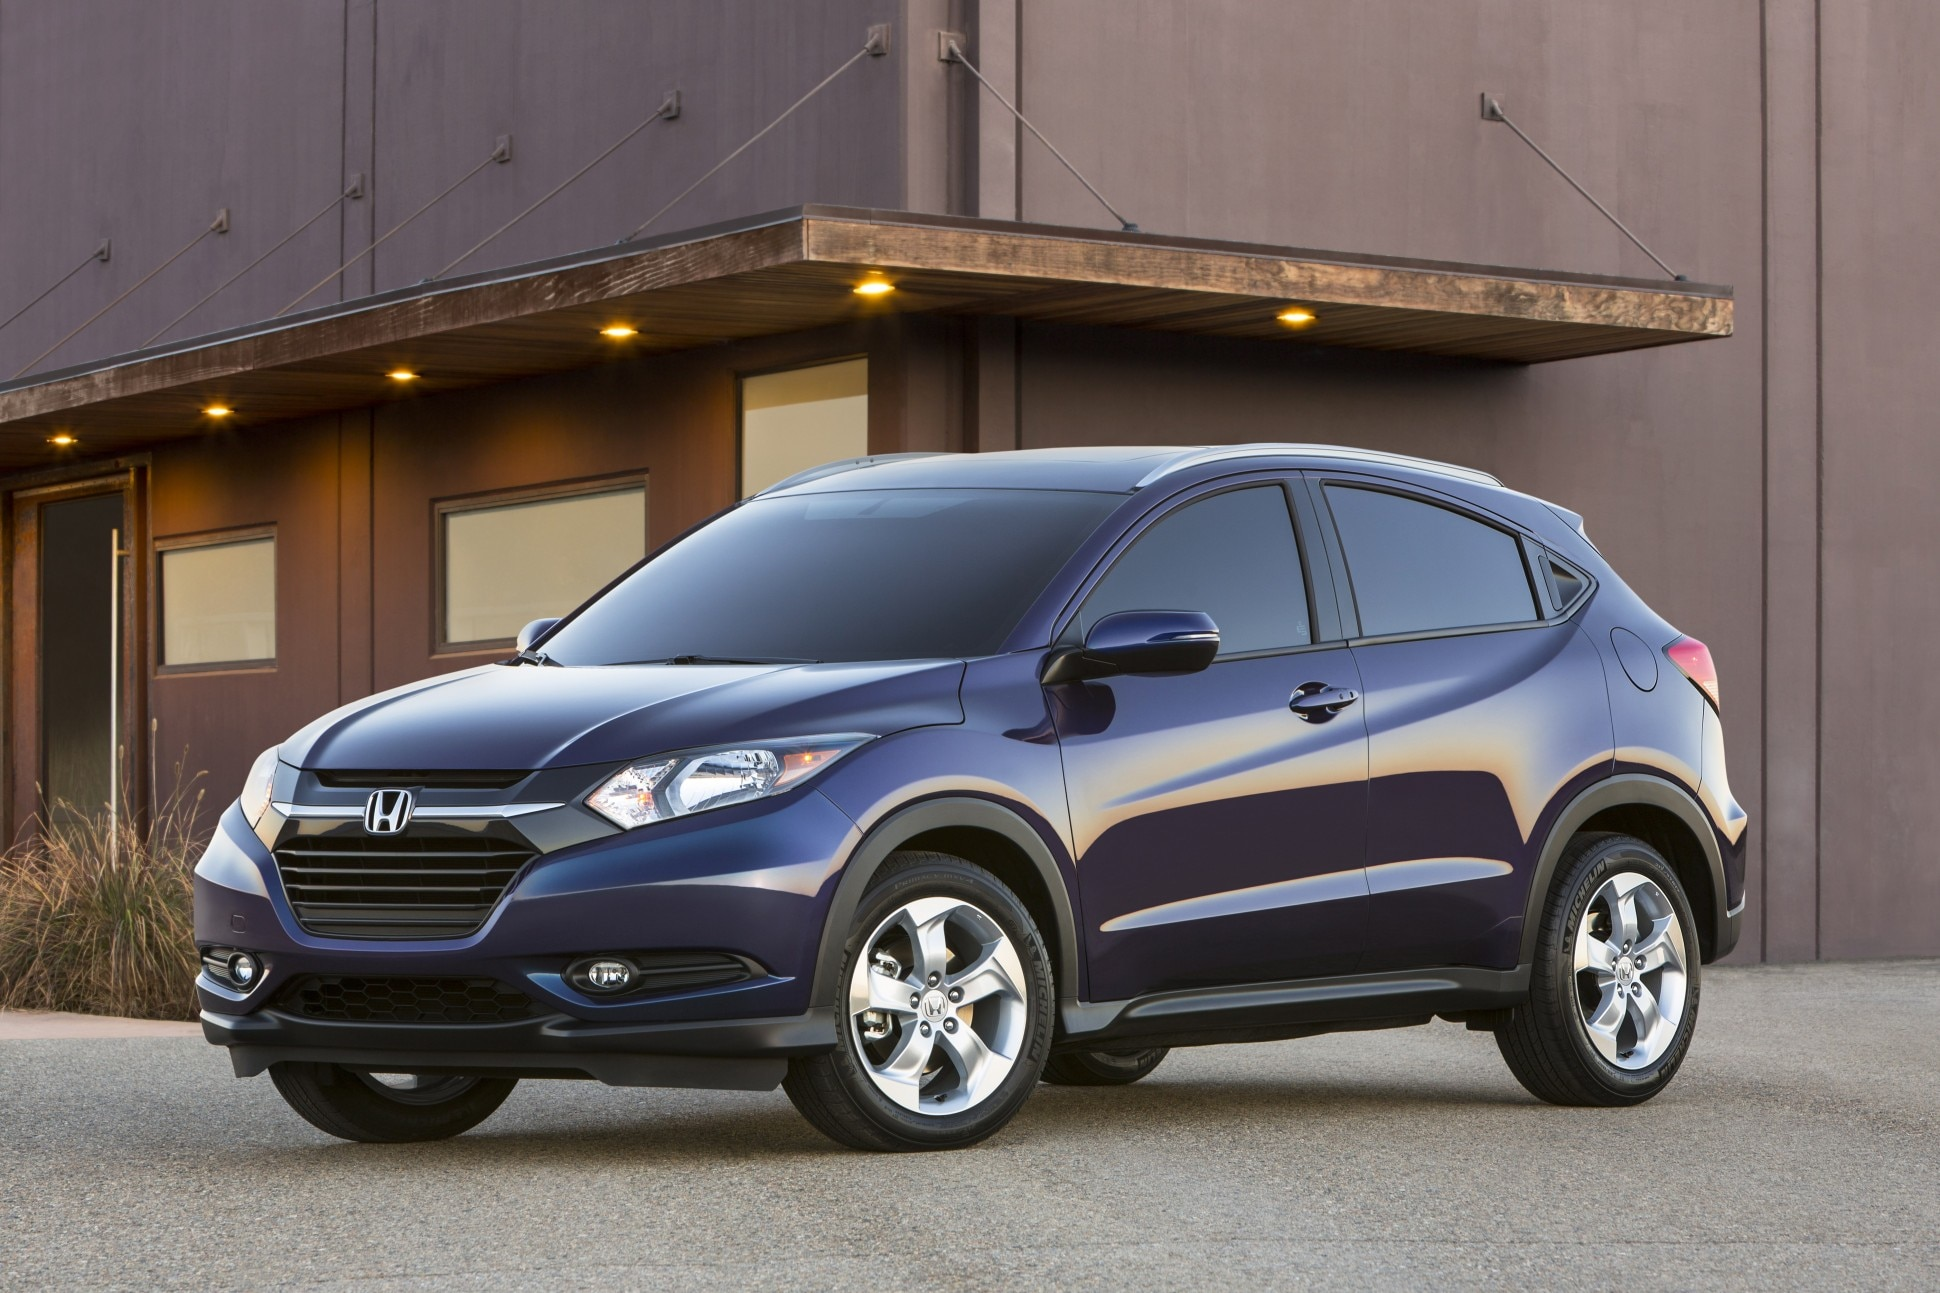 Honda Hr-V Crossover at Cookeville Honda.